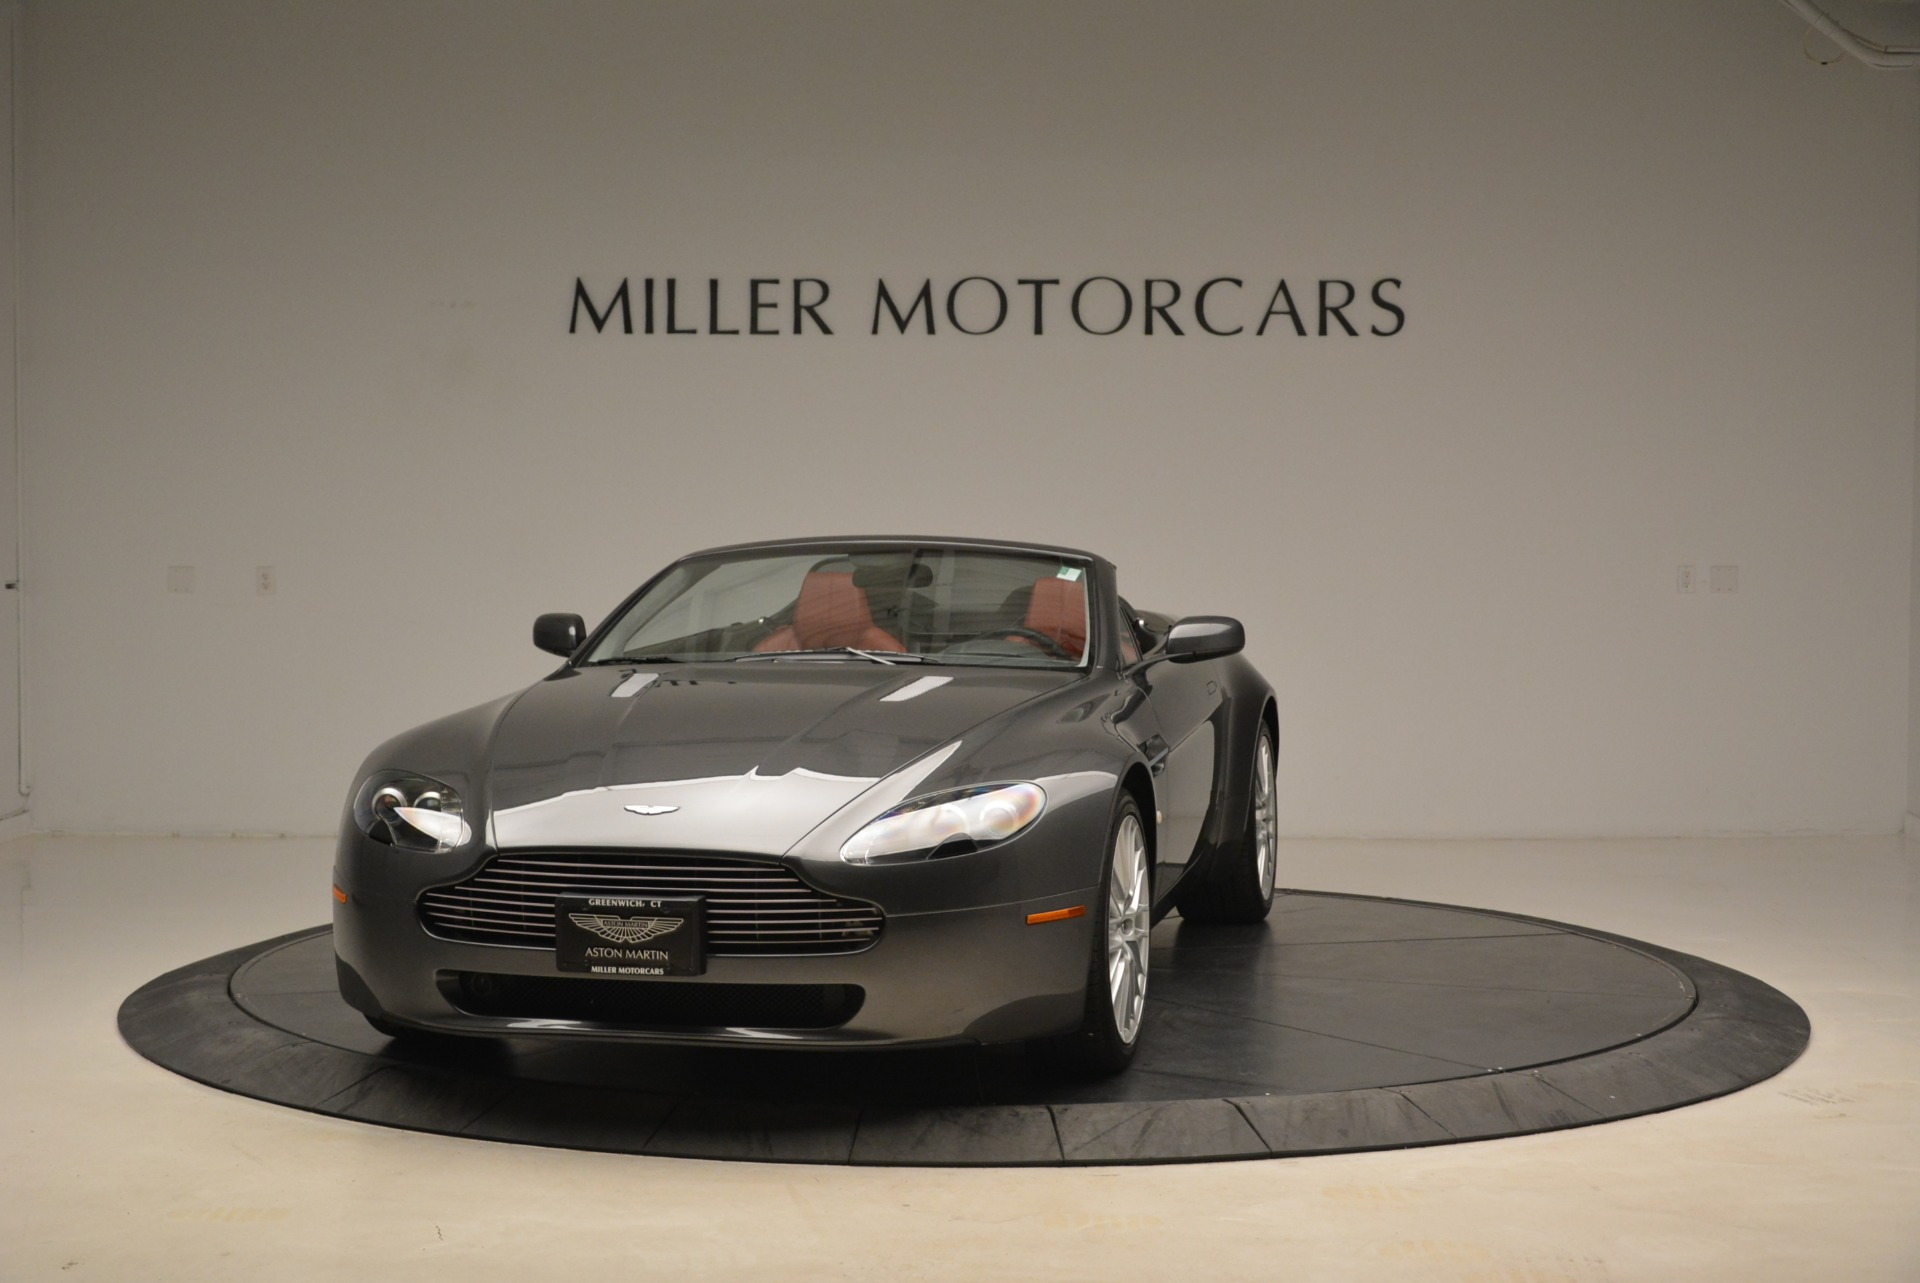 Used 2009 Aston Martin V8 Vantage Roadster for sale Sold at Rolls-Royce Motor Cars Greenwich in Greenwich CT 06830 1